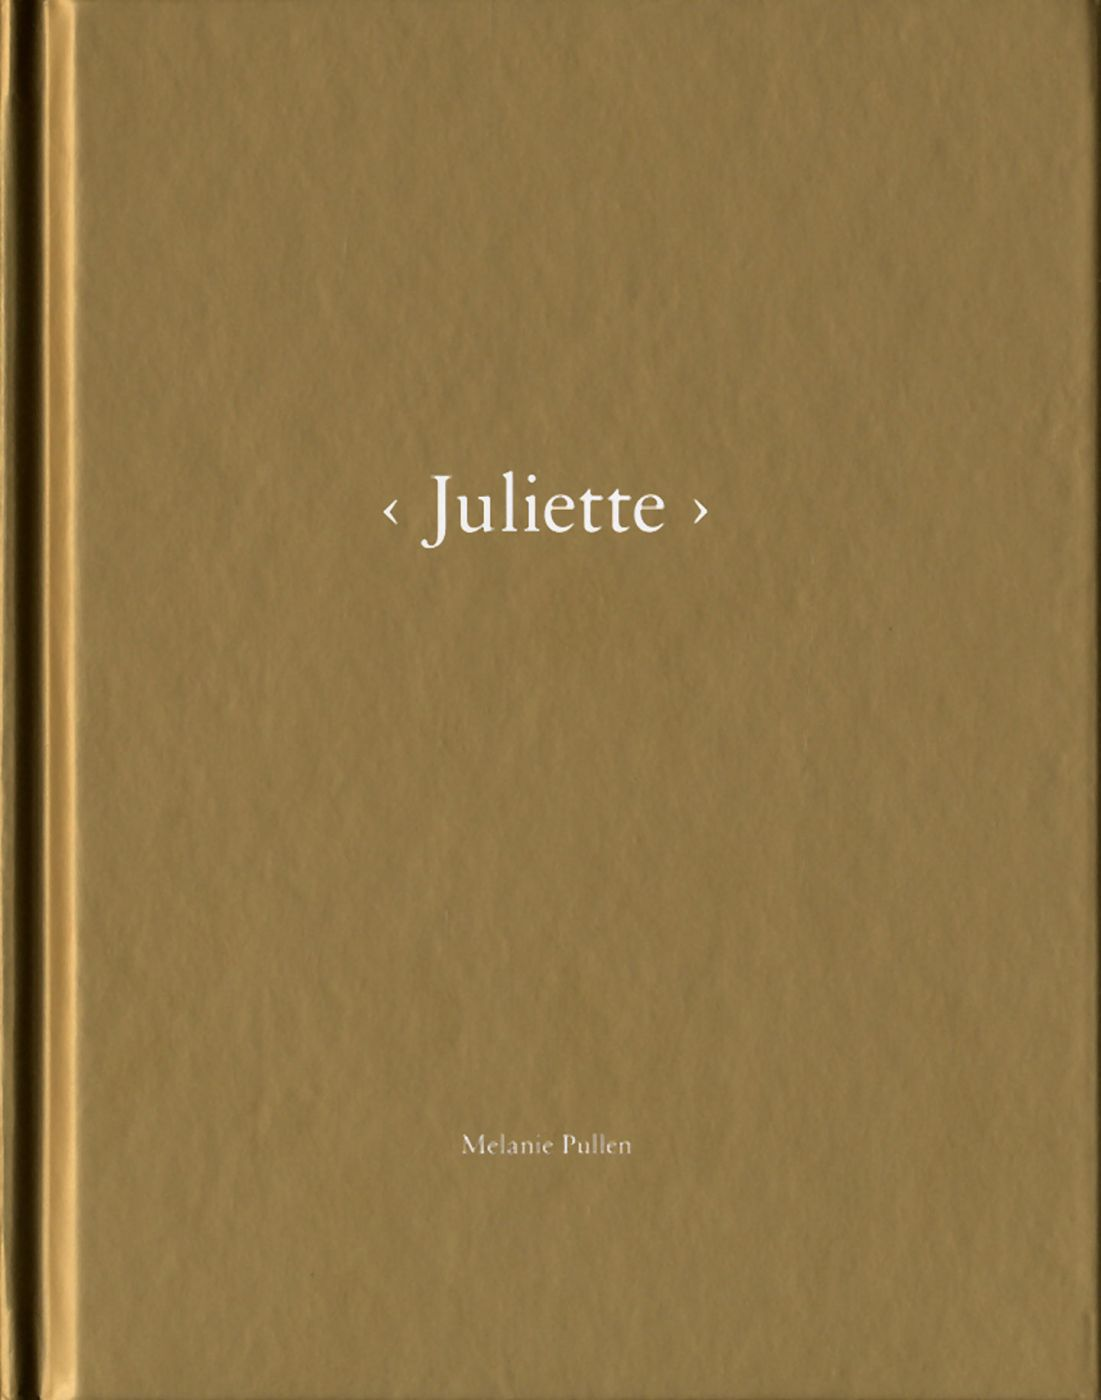 Melanie Pullen: Juliette (One Picture Book #78), Limited Edition (with Print)